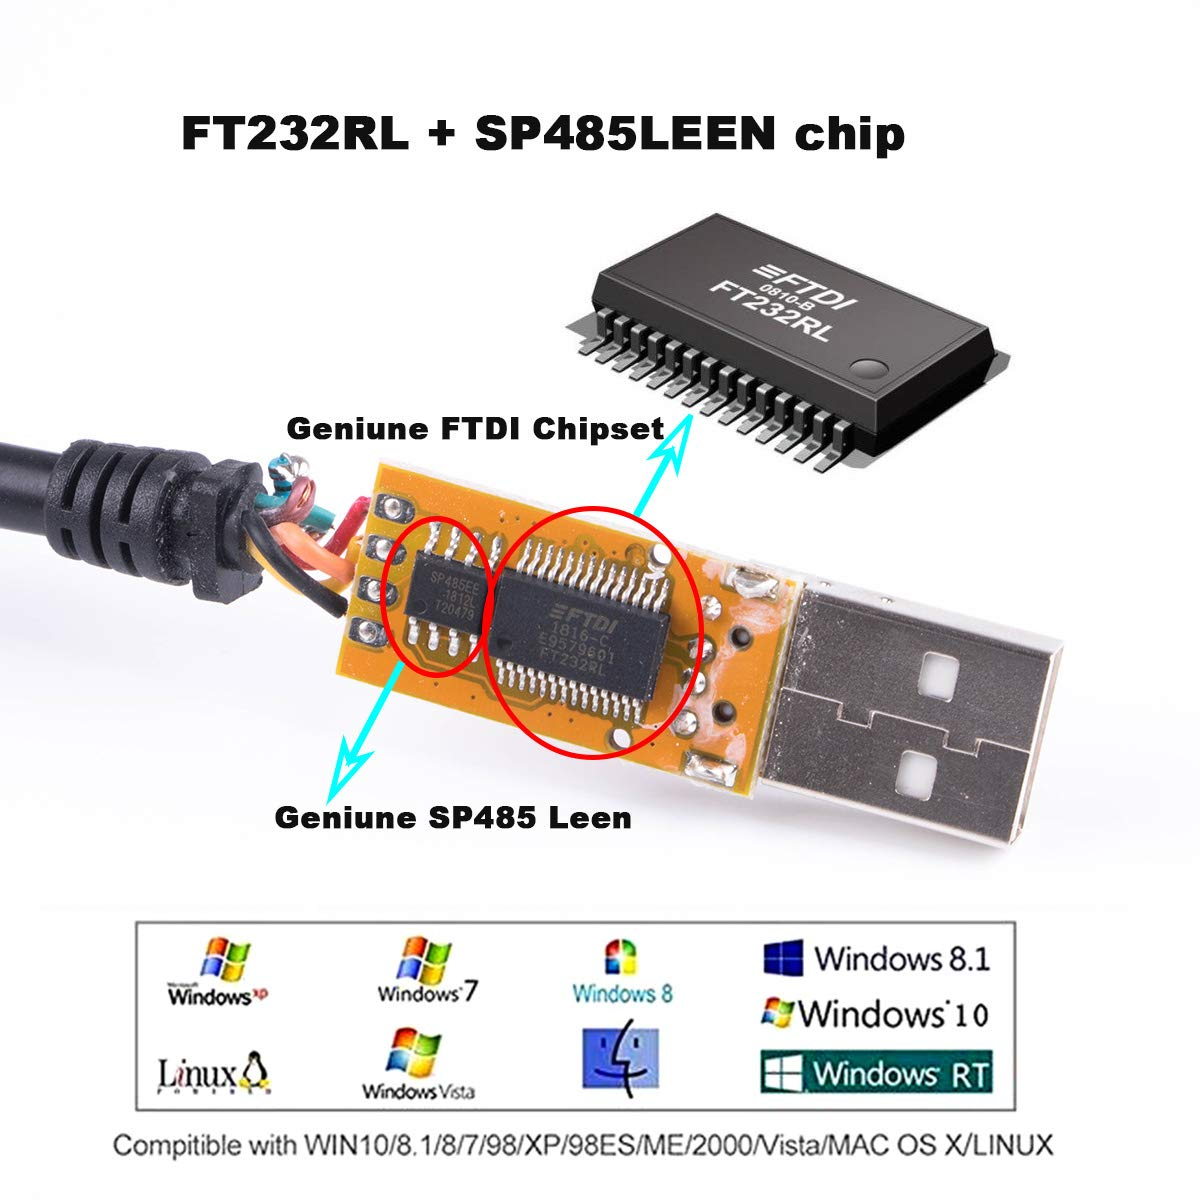 USB to RS485 Serial Cable FTDI Chipset Data Adapter Converter Cable Compatible for USB-RS485-WE-1800-BT Support Win7 8 10 XP Android Mac Linux Black USB Housing